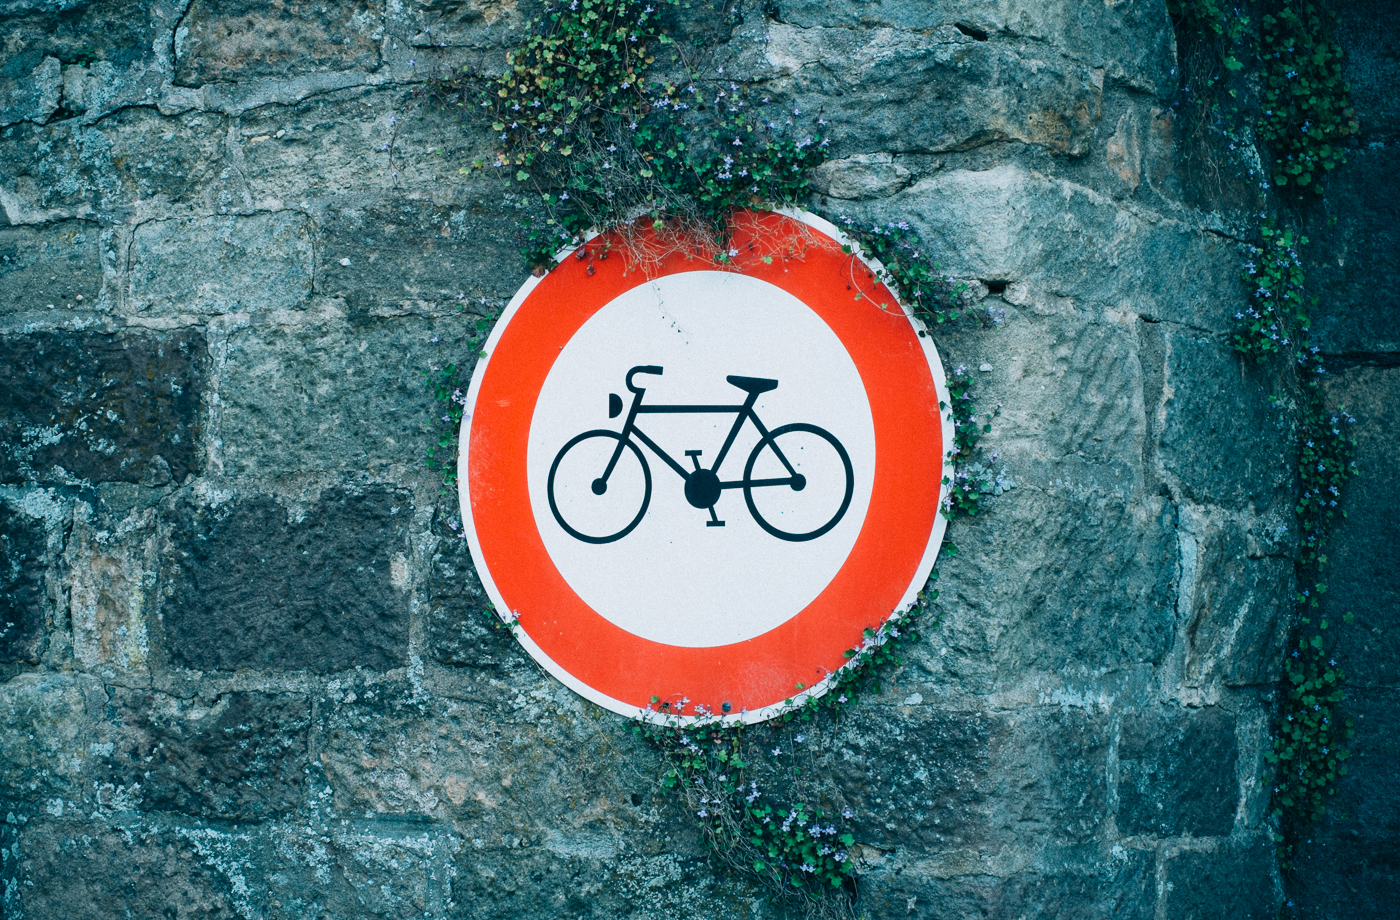 Bicycles not permitted